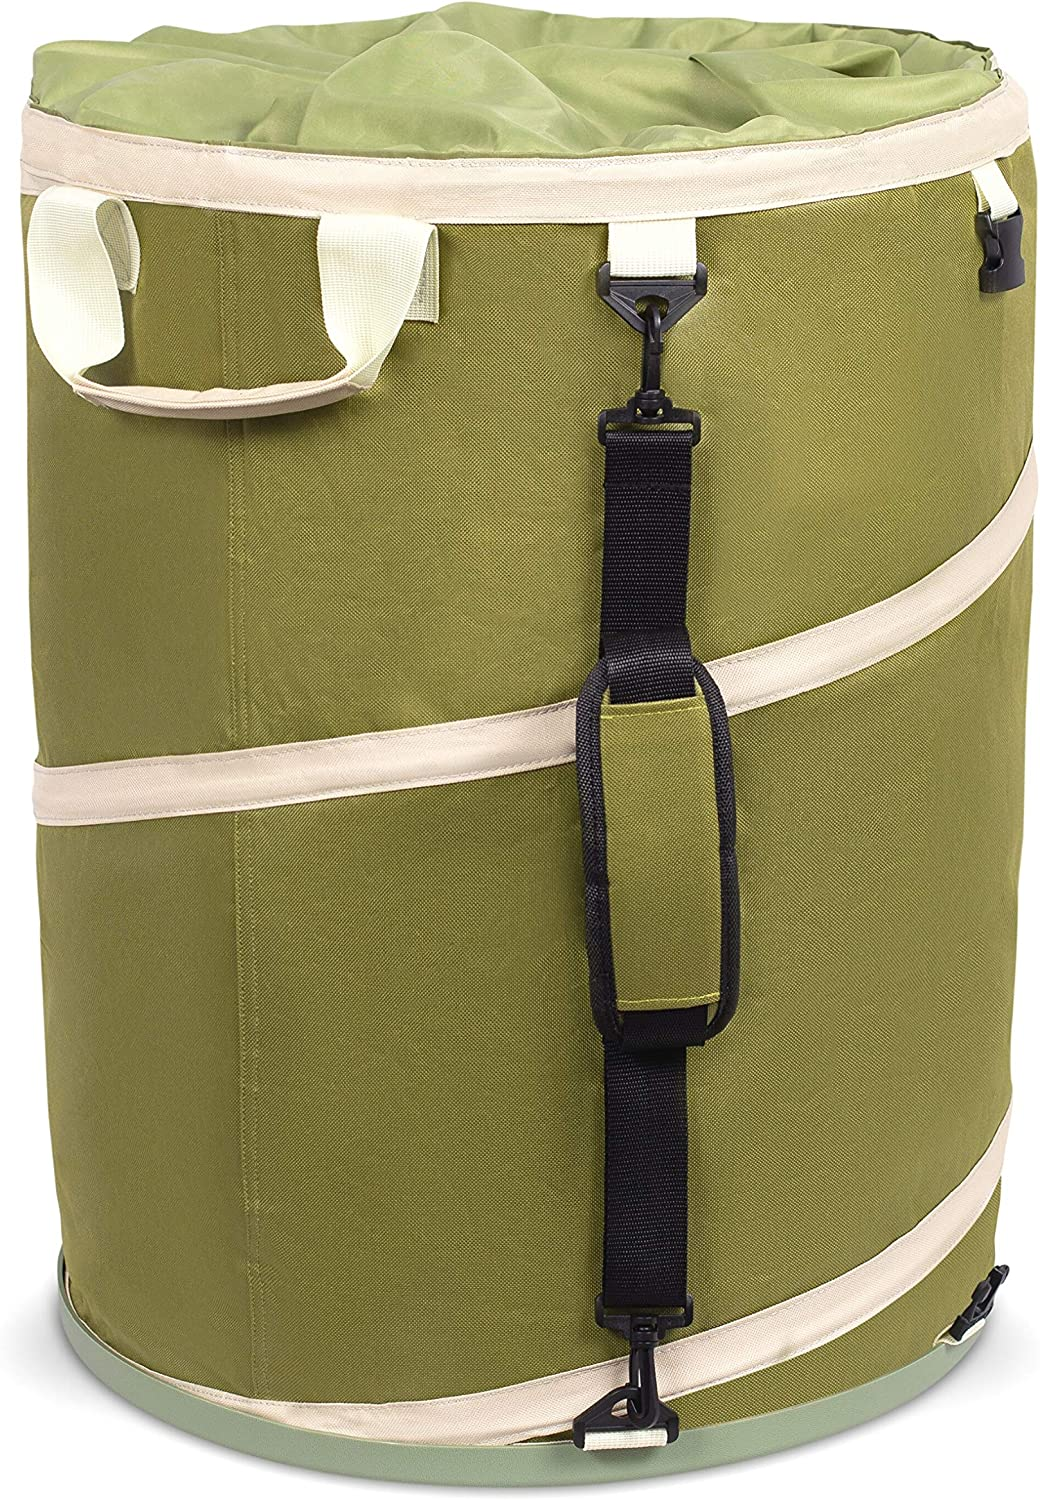 BirdRock Home 30 Gallon Collapsible Lawn and Leaf Bag - Hardshell Bottom - Green - Reusable Yard Can - Heavy Duty Drawstring Lid - Garage Storage - Outdoor Tote Basket - Handles - Gardening Container